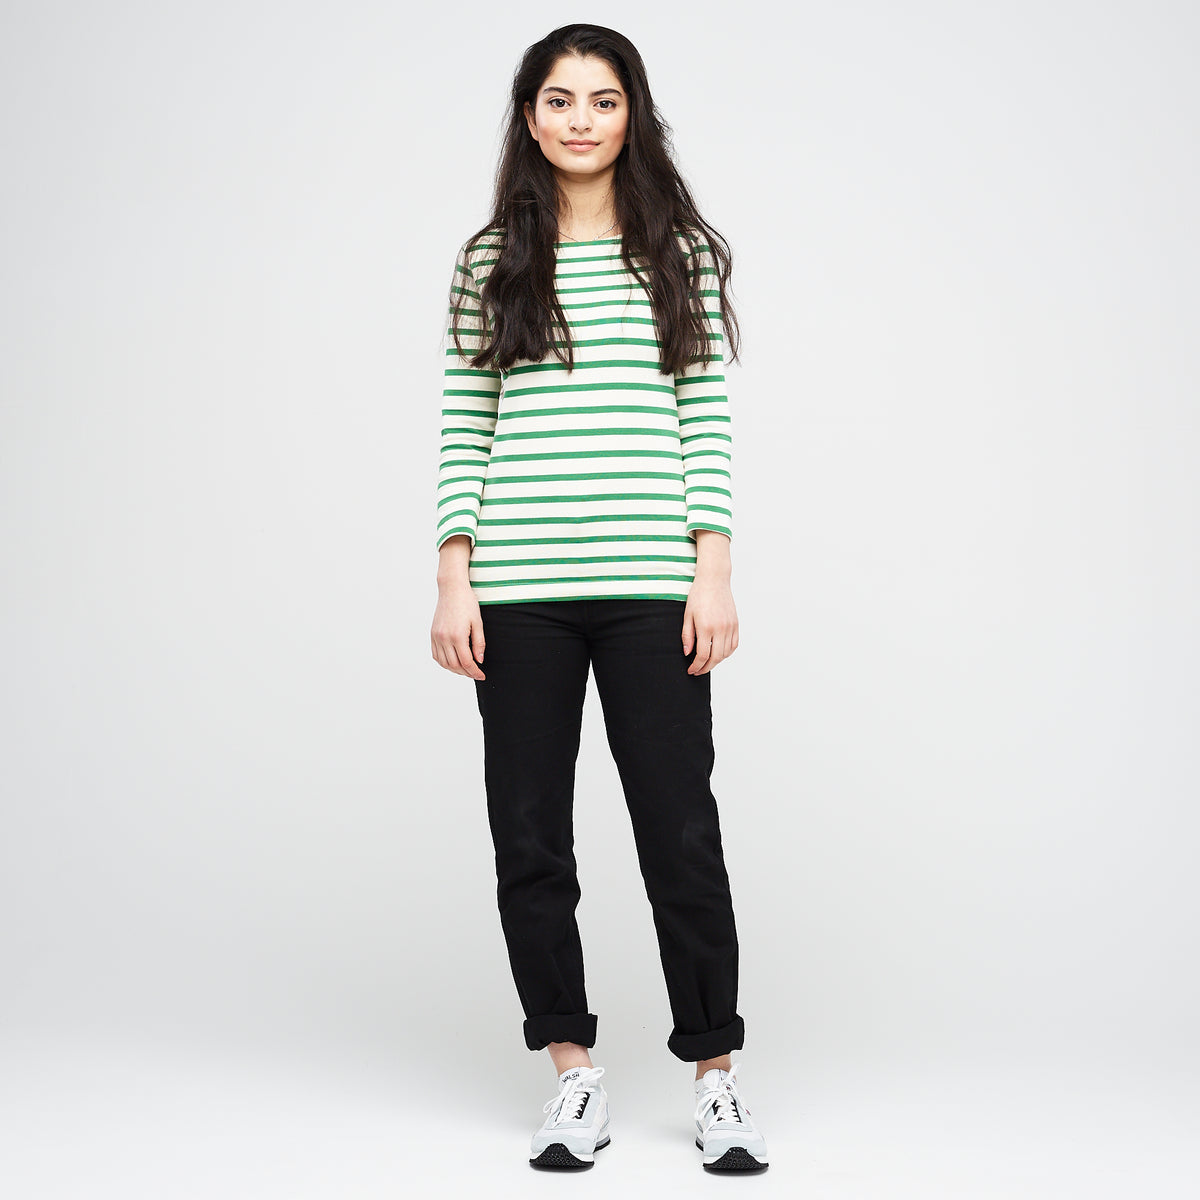 Women's 3/4 Sleeve Breton Ecru/Green - Community Clothing